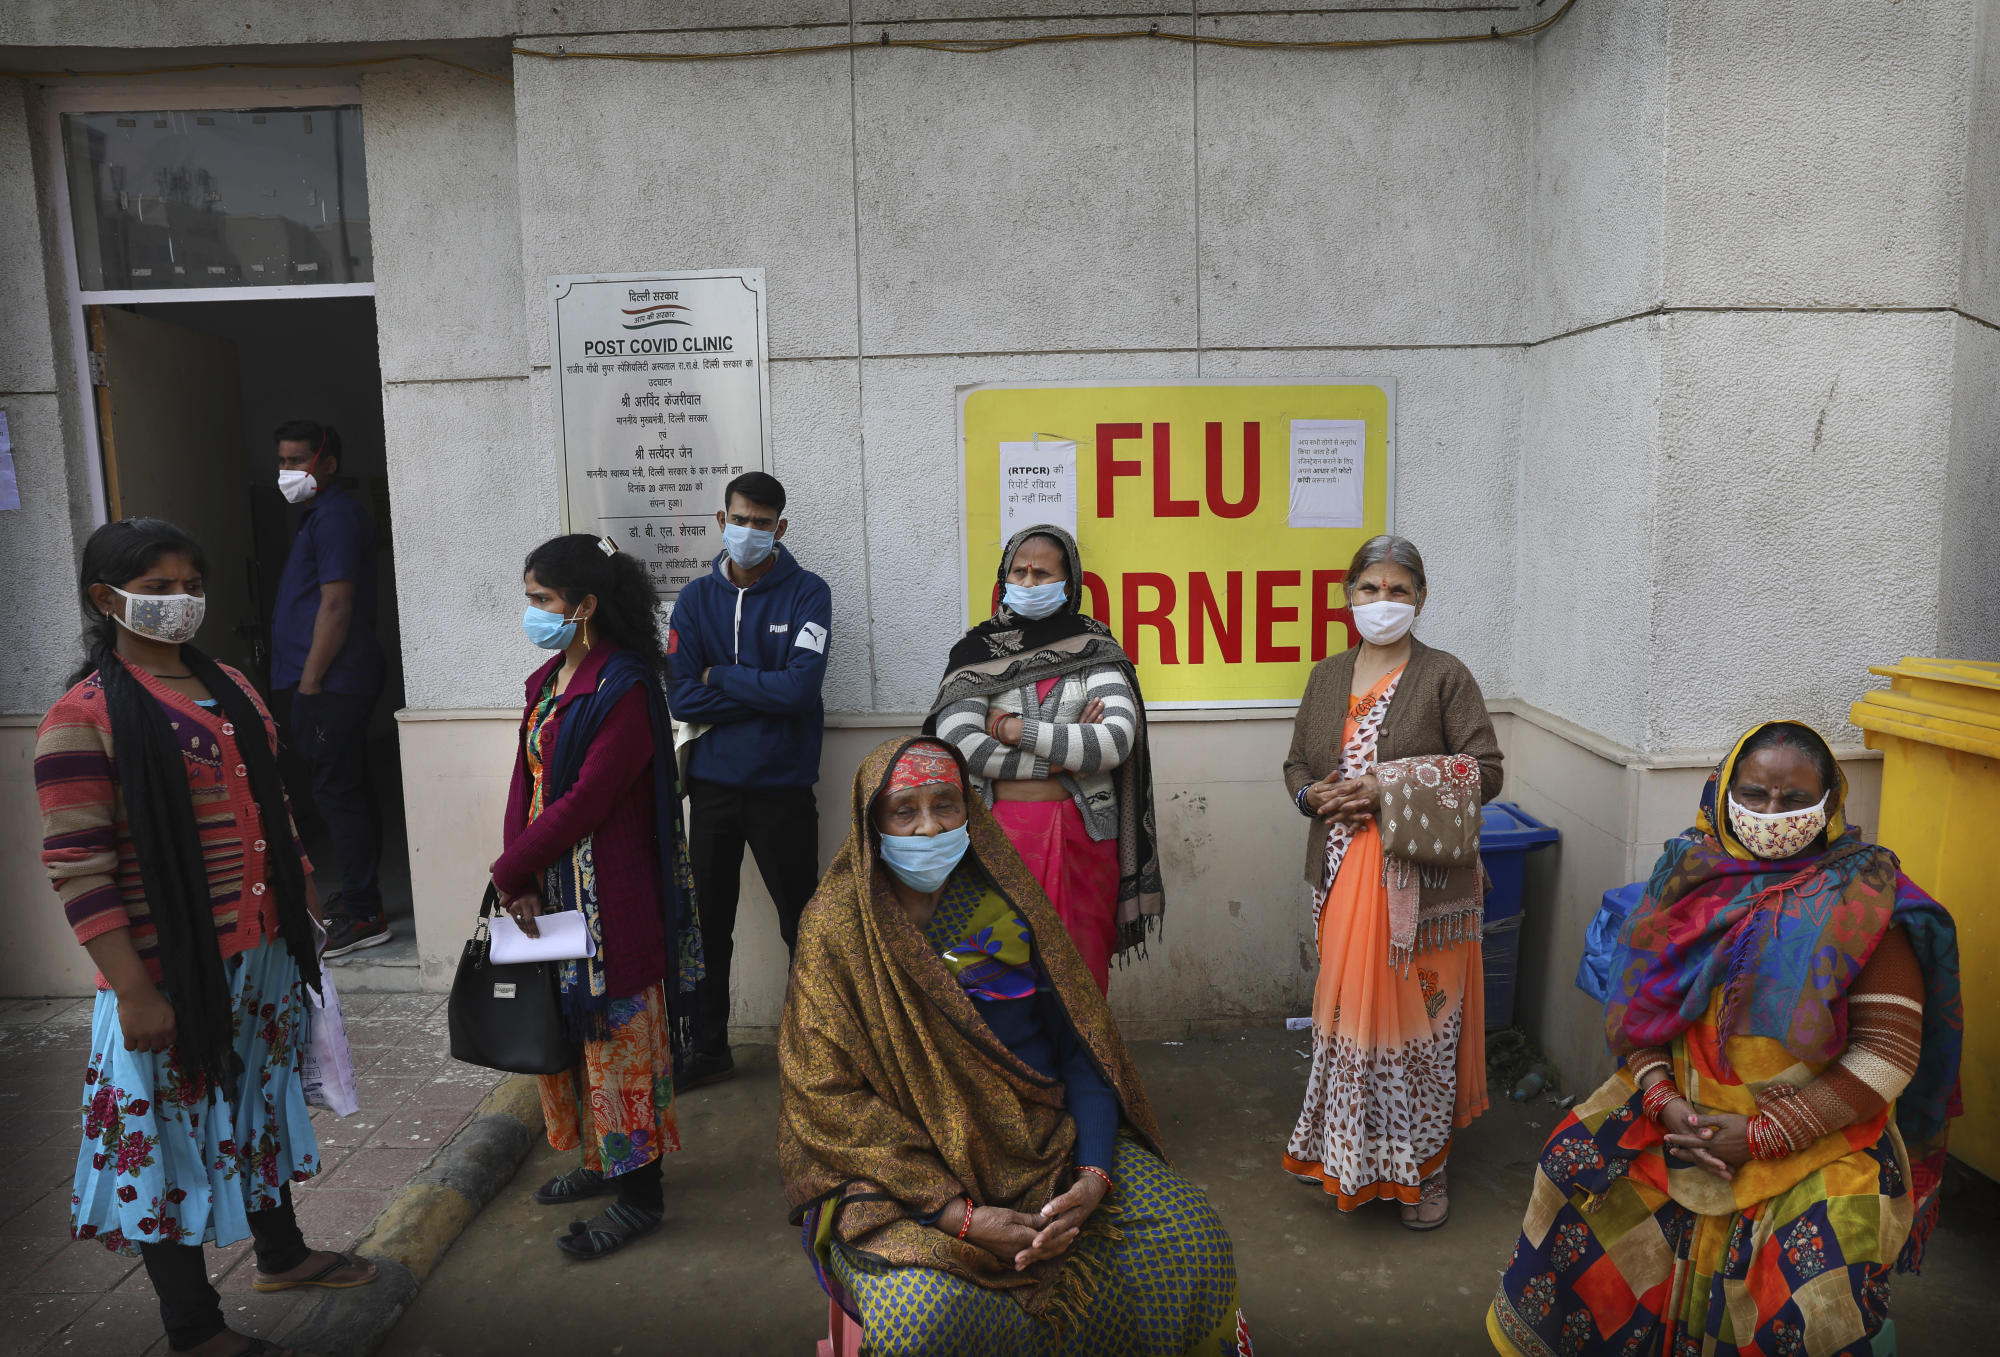 India's dramatic fall in virus cases leaves experts stumped - Yahoo! Voices